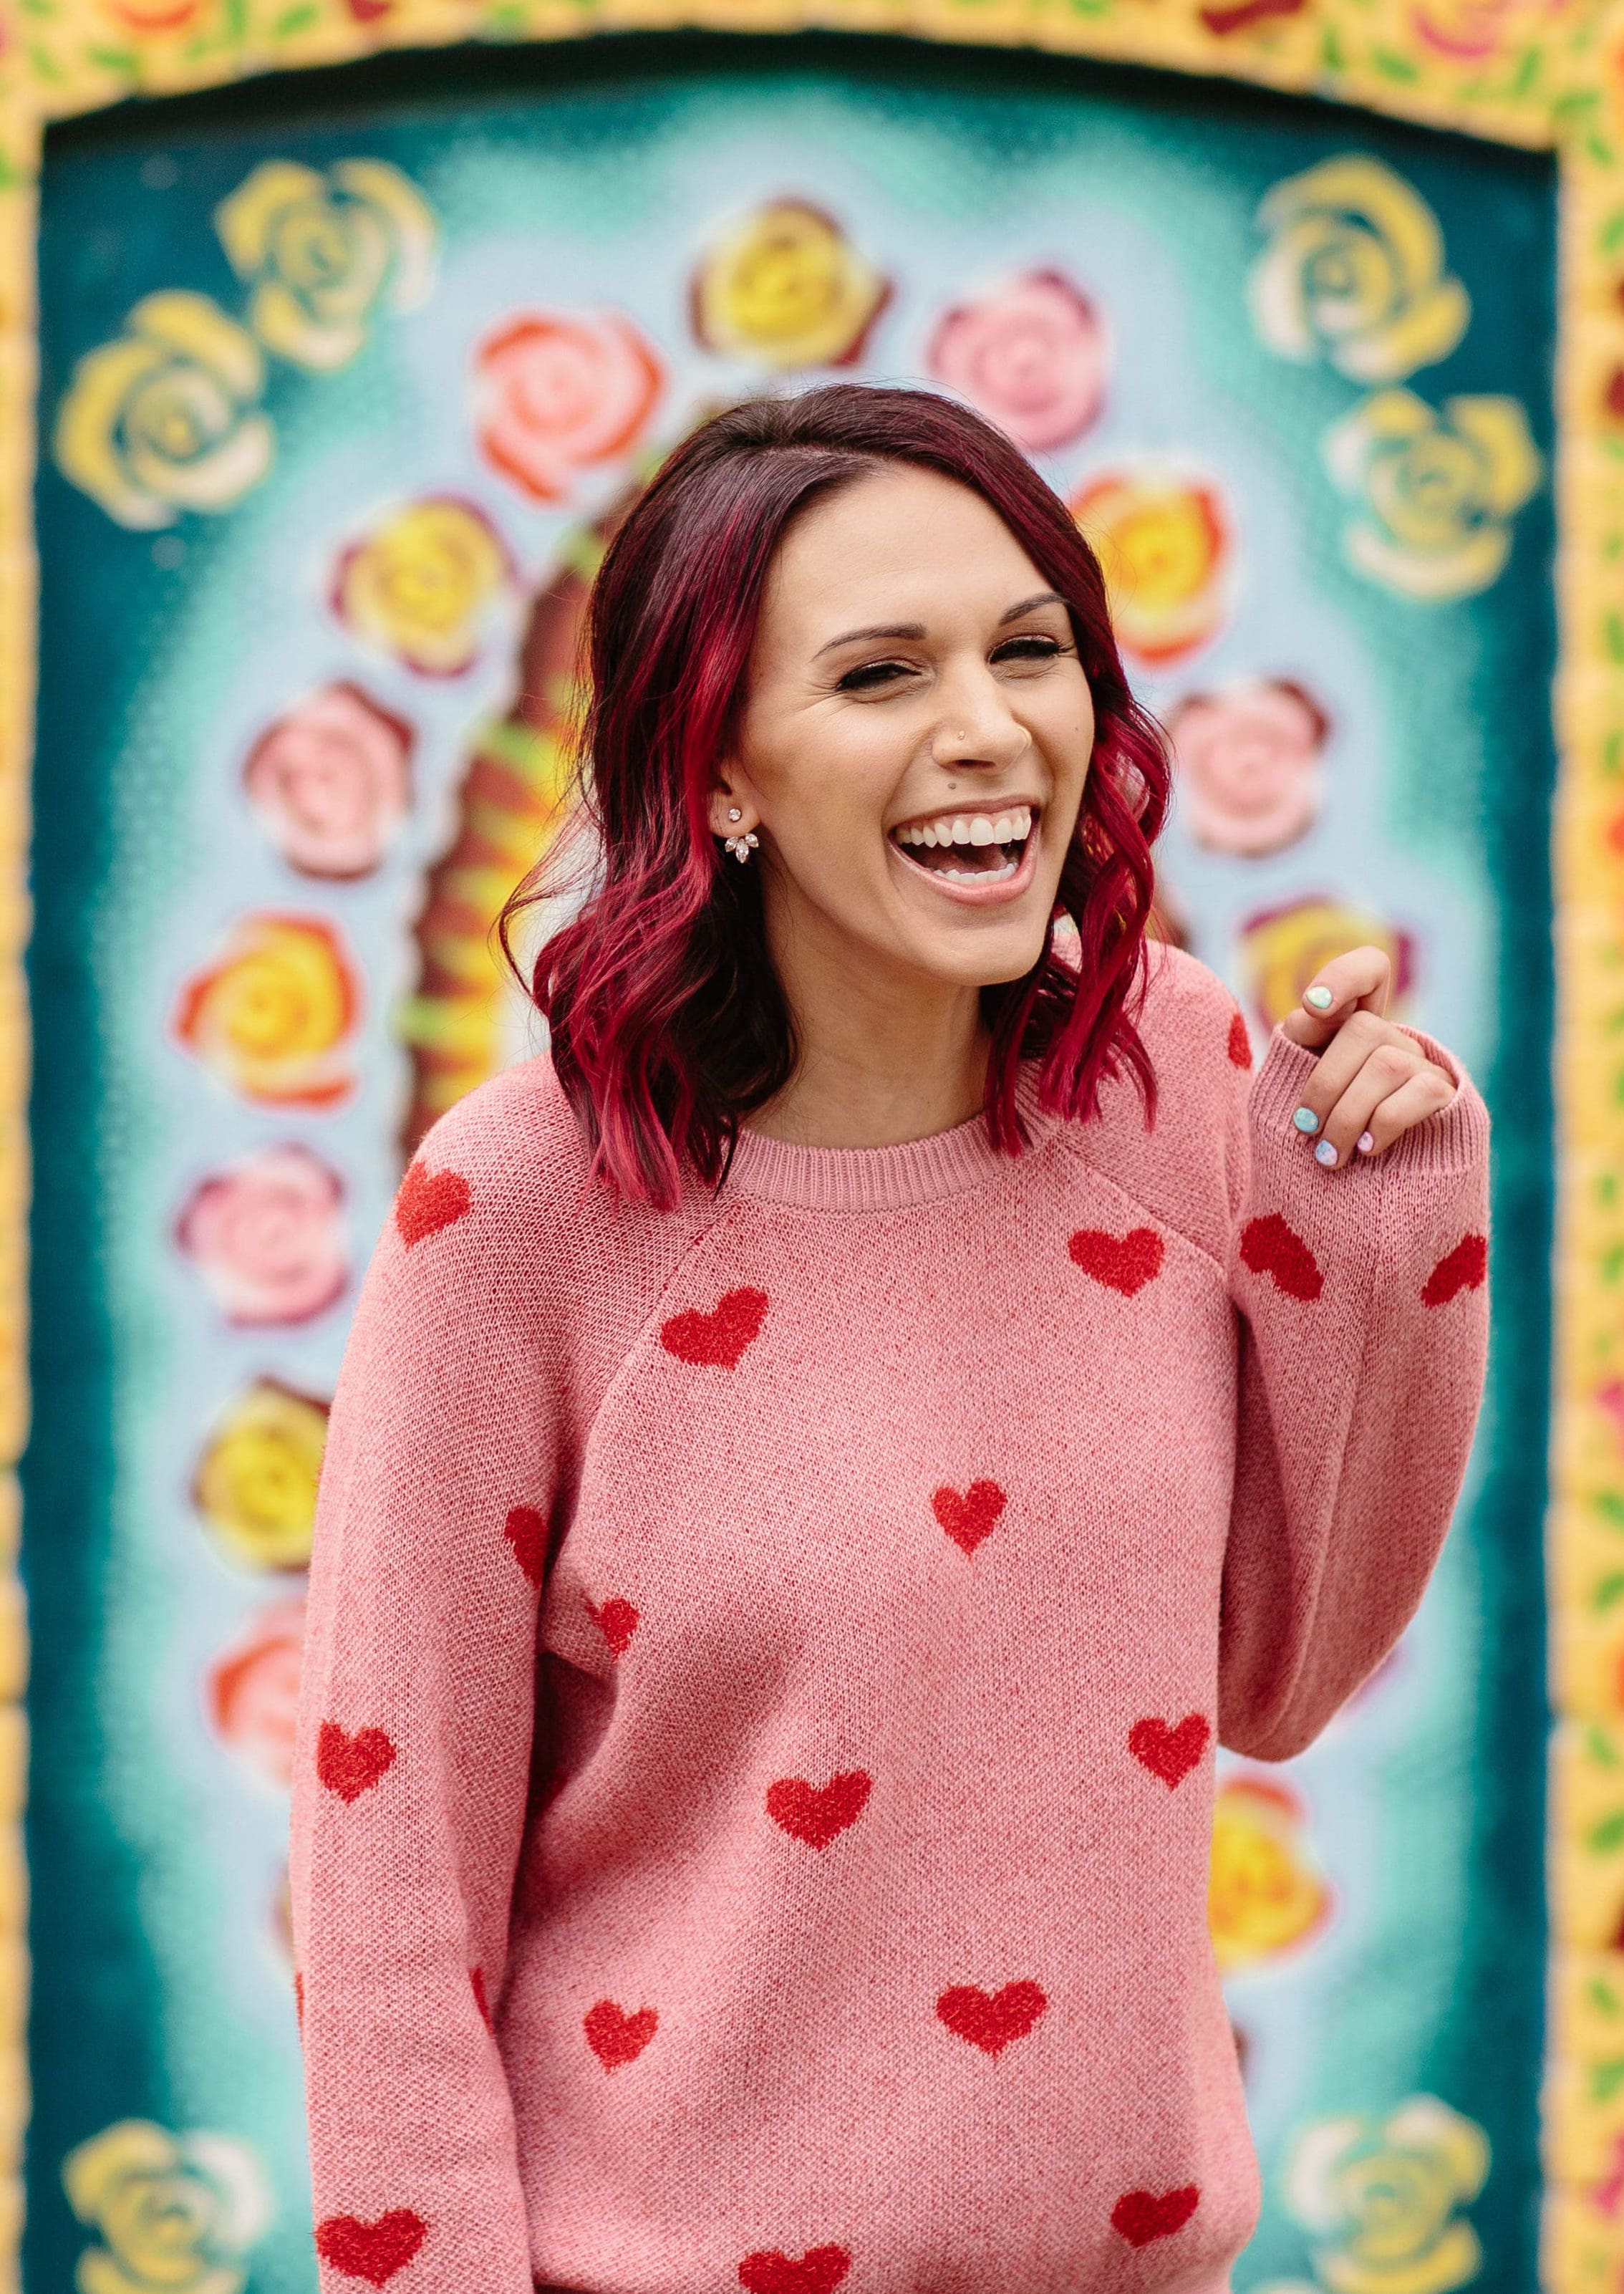 Shohreh has pink hair and wear a pink sweater with red hearts on it. She's laughing while standing in front of a colorful wall that frames her in florals.